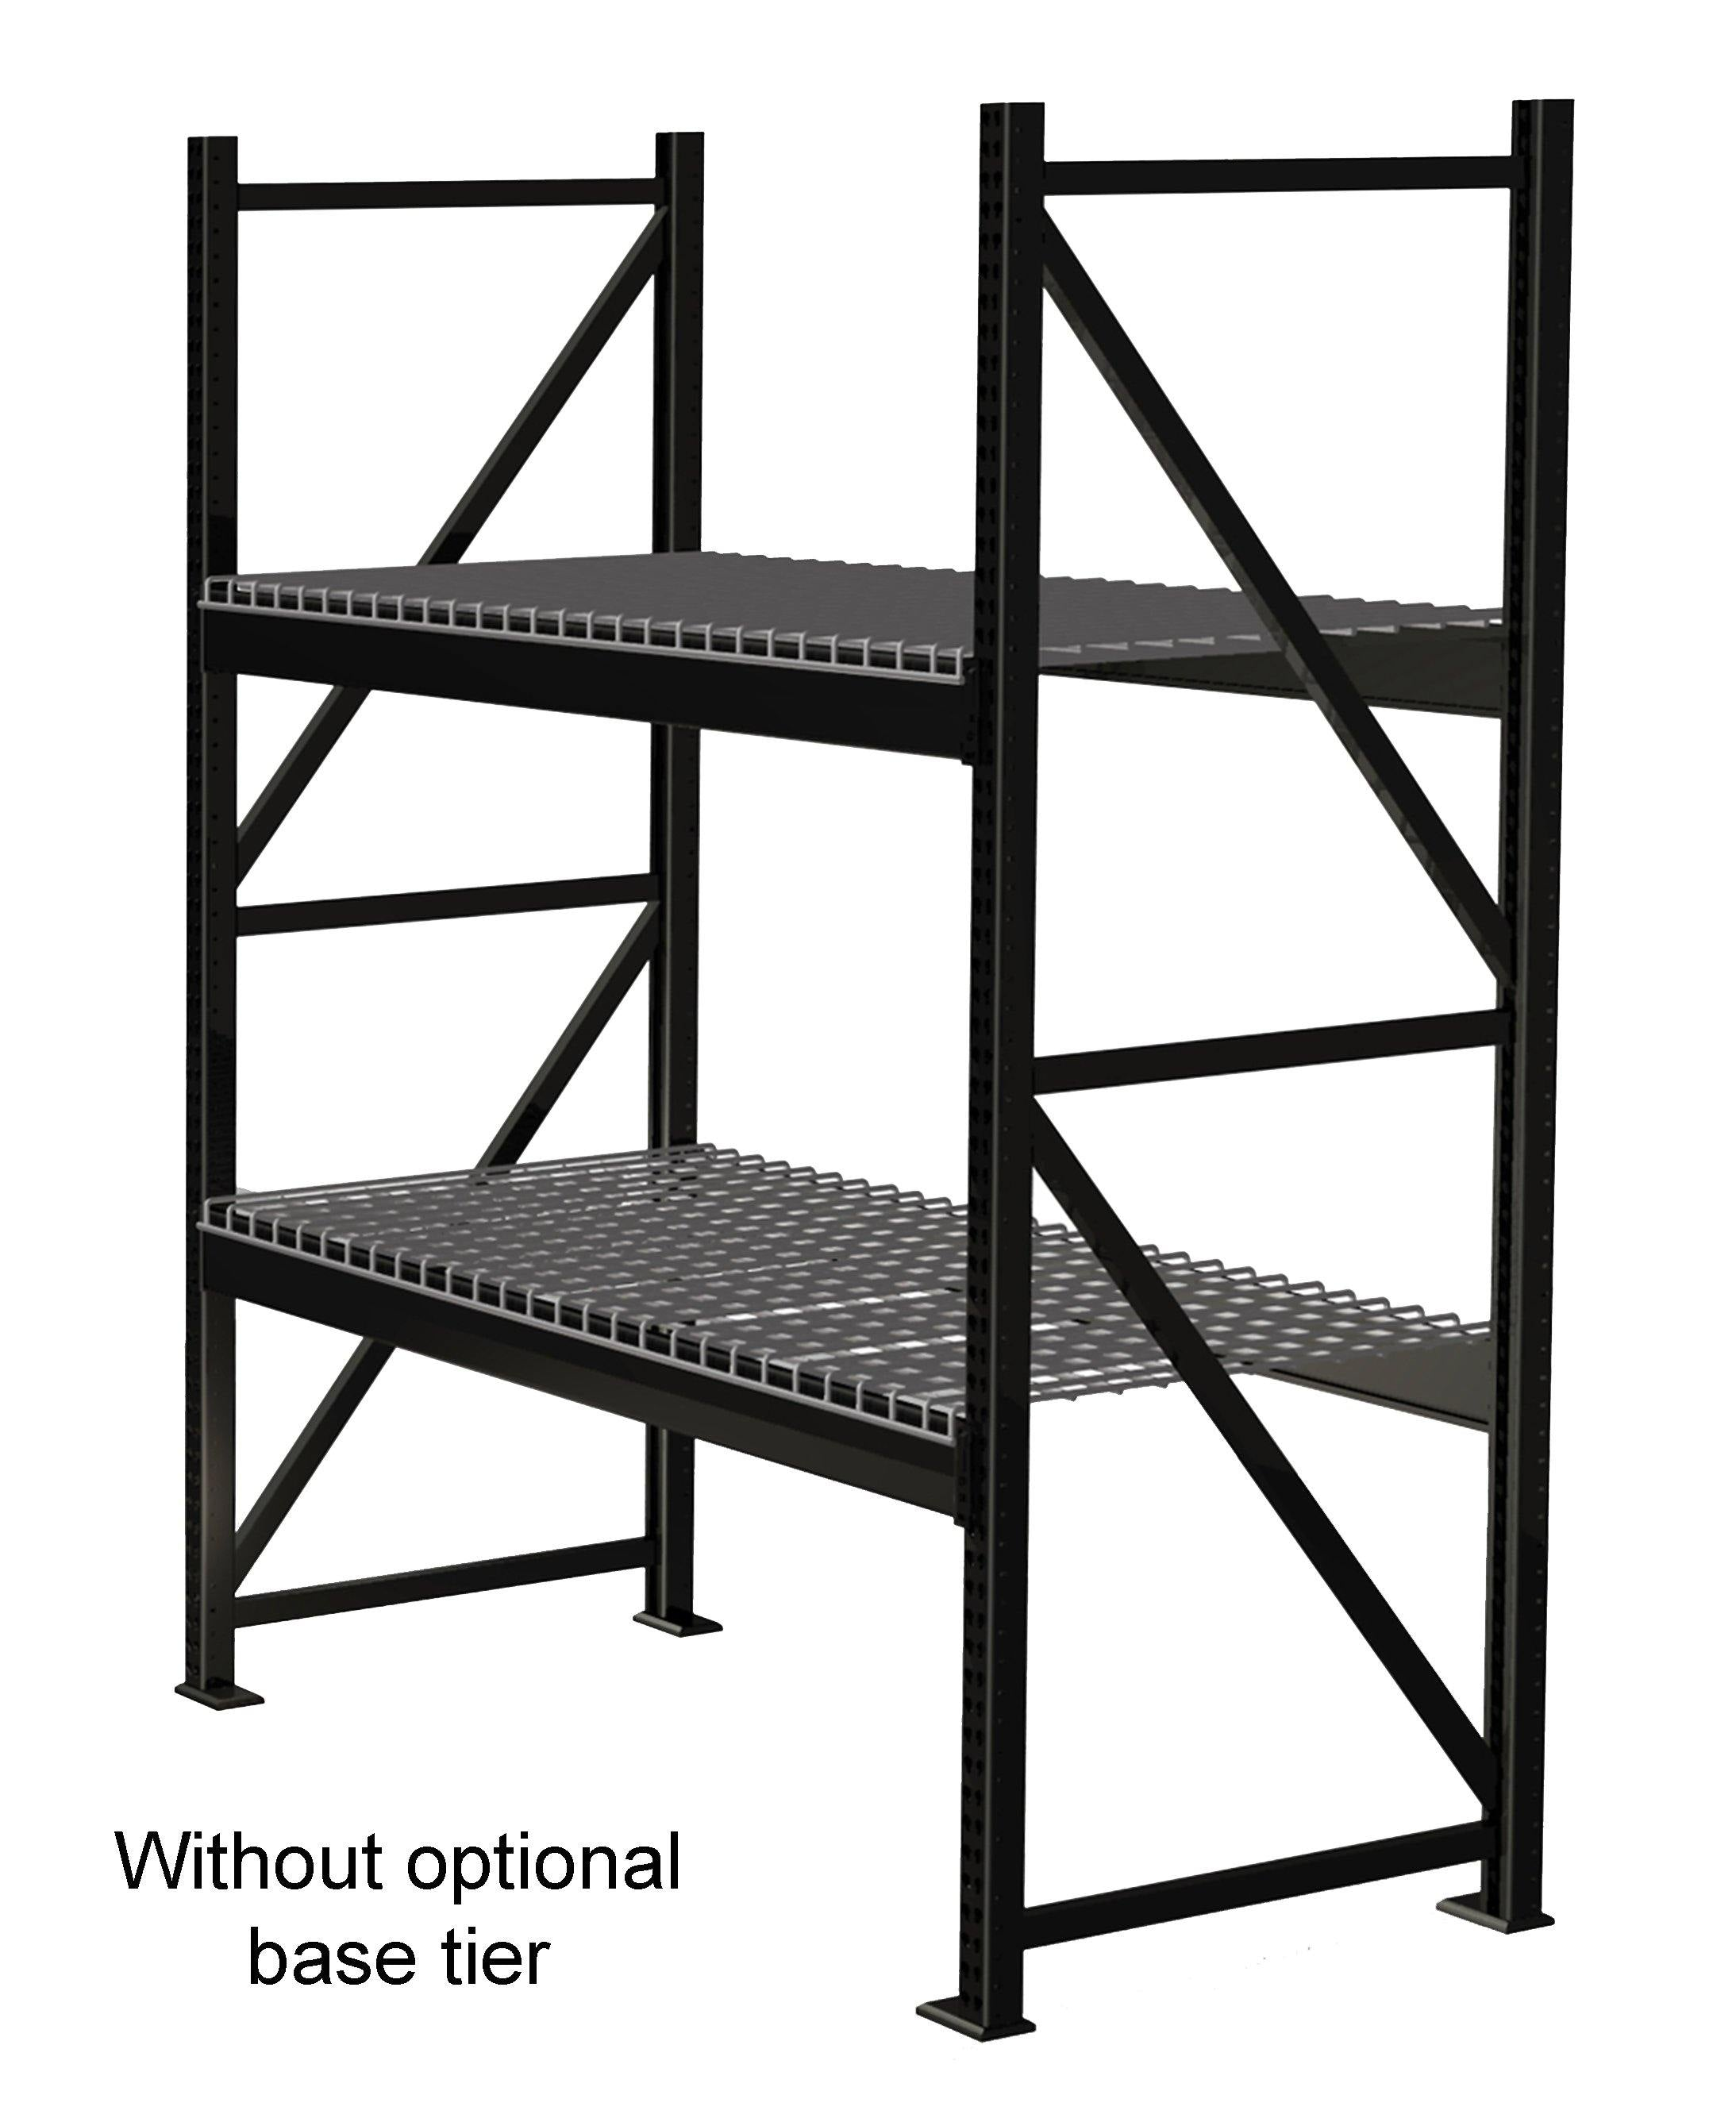 material inc accessories rack systems products selective handling pallet steelking steel king racks matrix